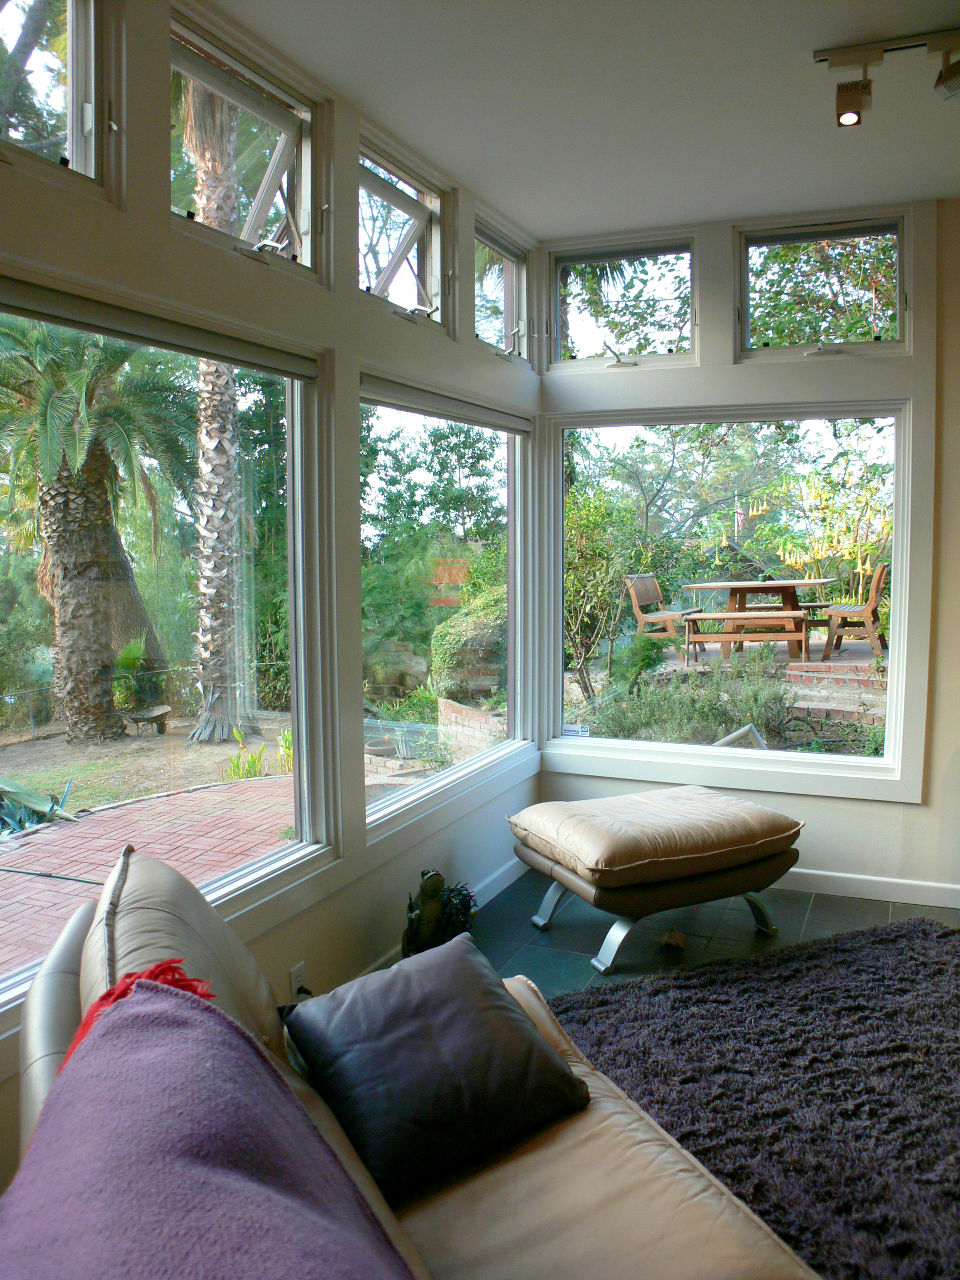 The lovely wall of windows overlooking the backyard. This home feels like an artist's retreat.